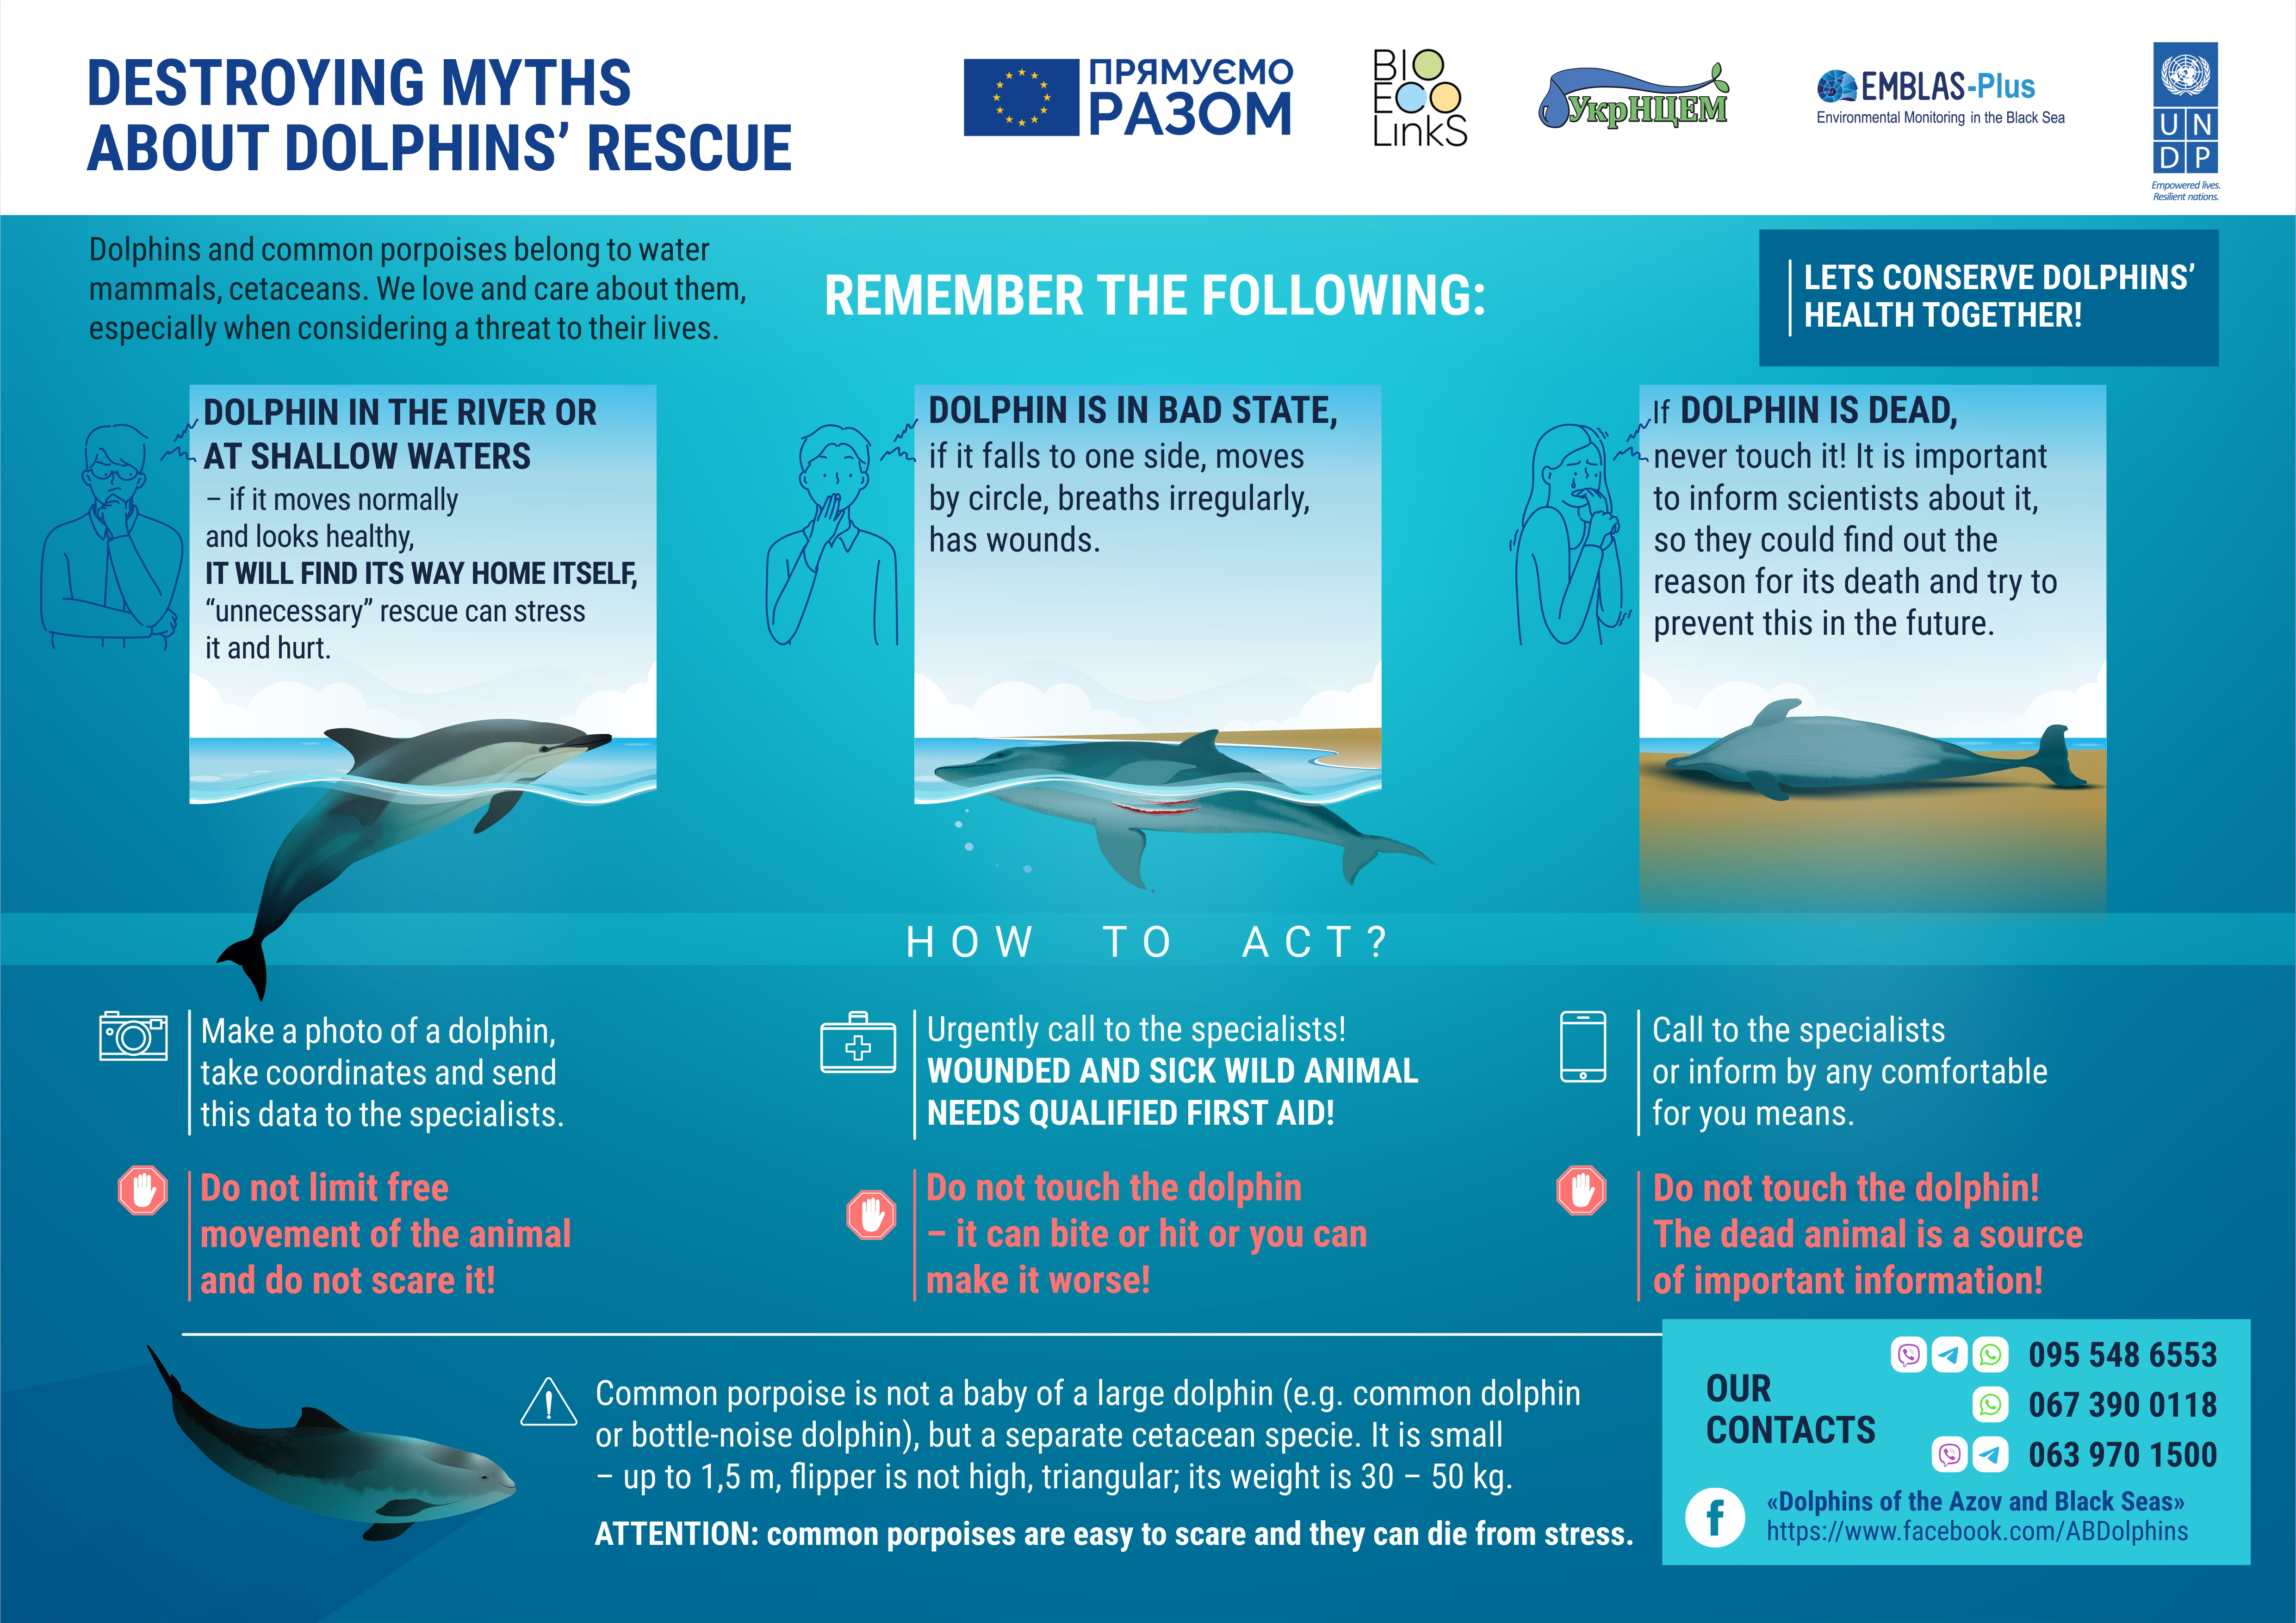 DESTROYING MYTHS ABOUT THE DOLPHINS' RESCUE